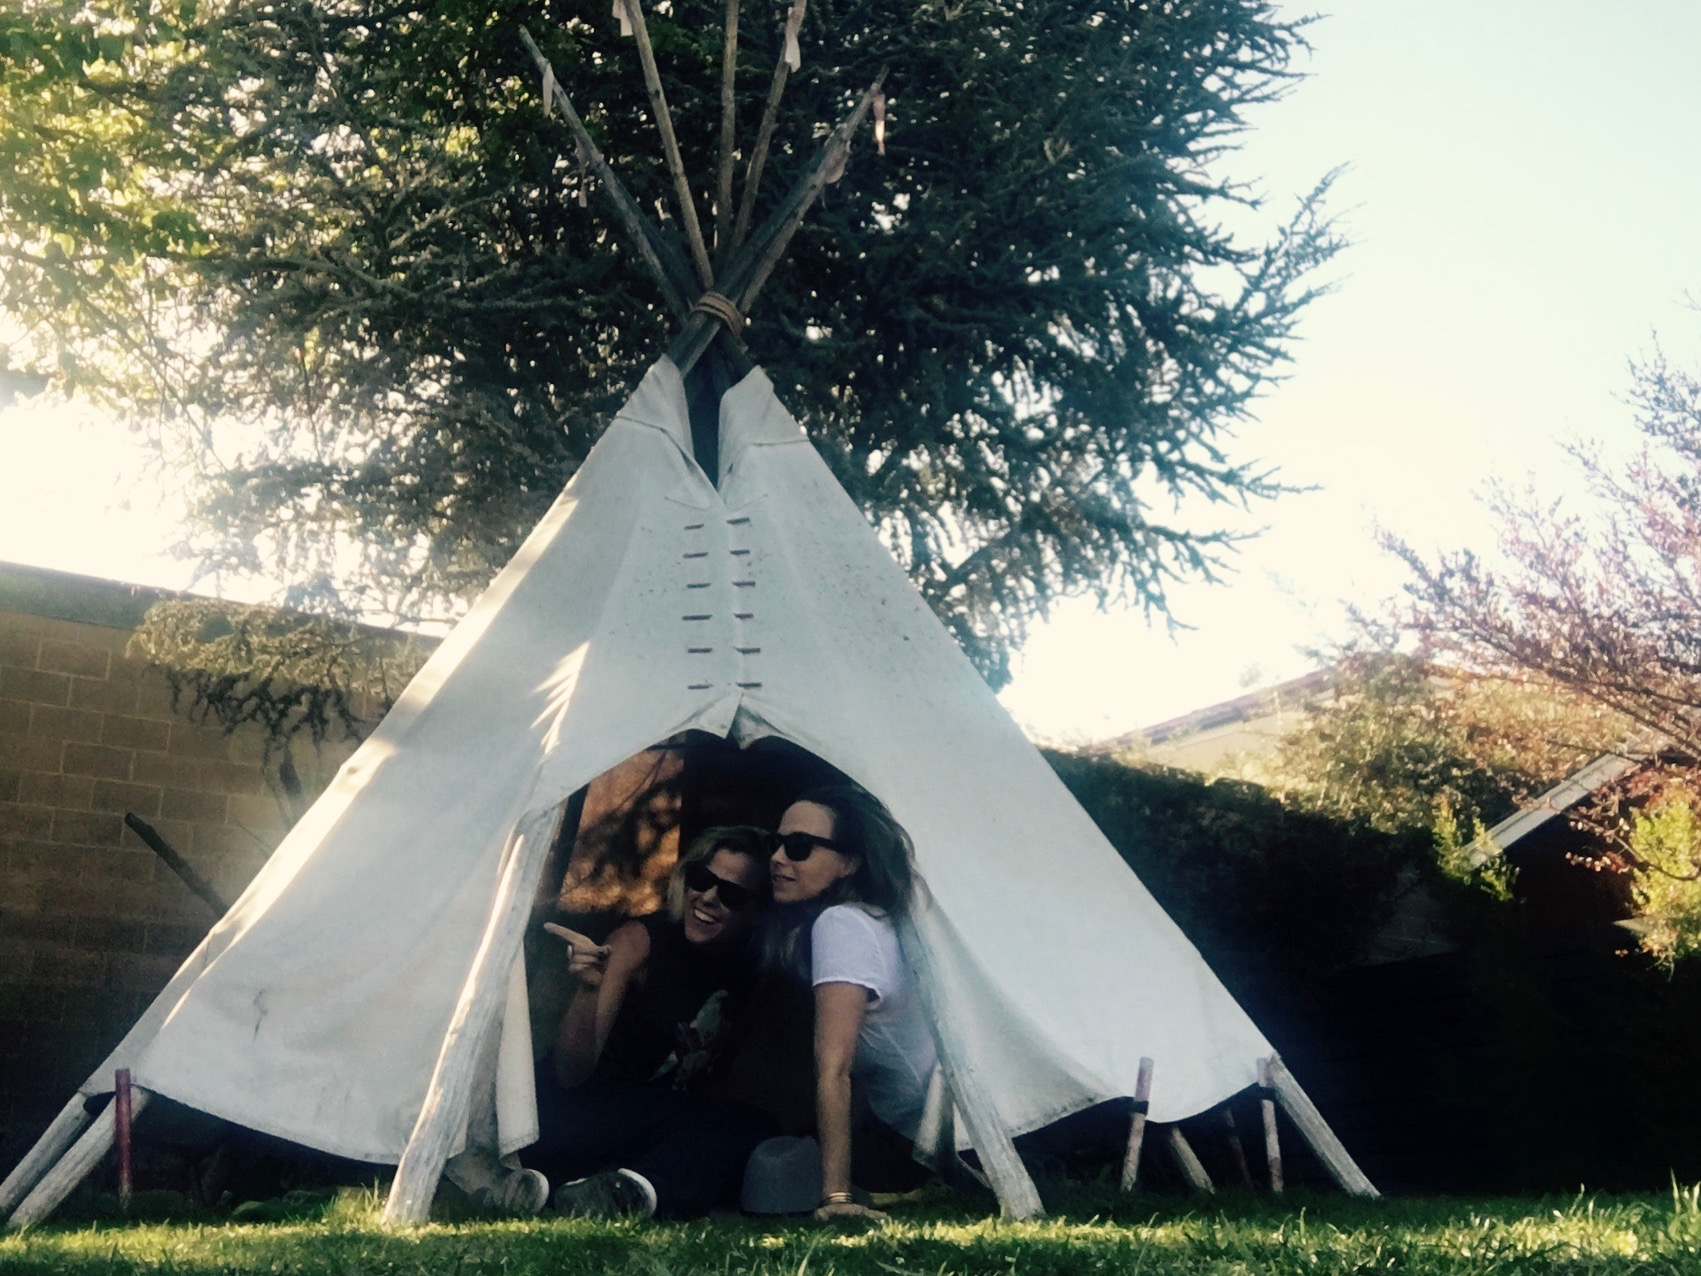 Tipi Tent at Ojai Rancho Inn, Ojai California - 3 Days*